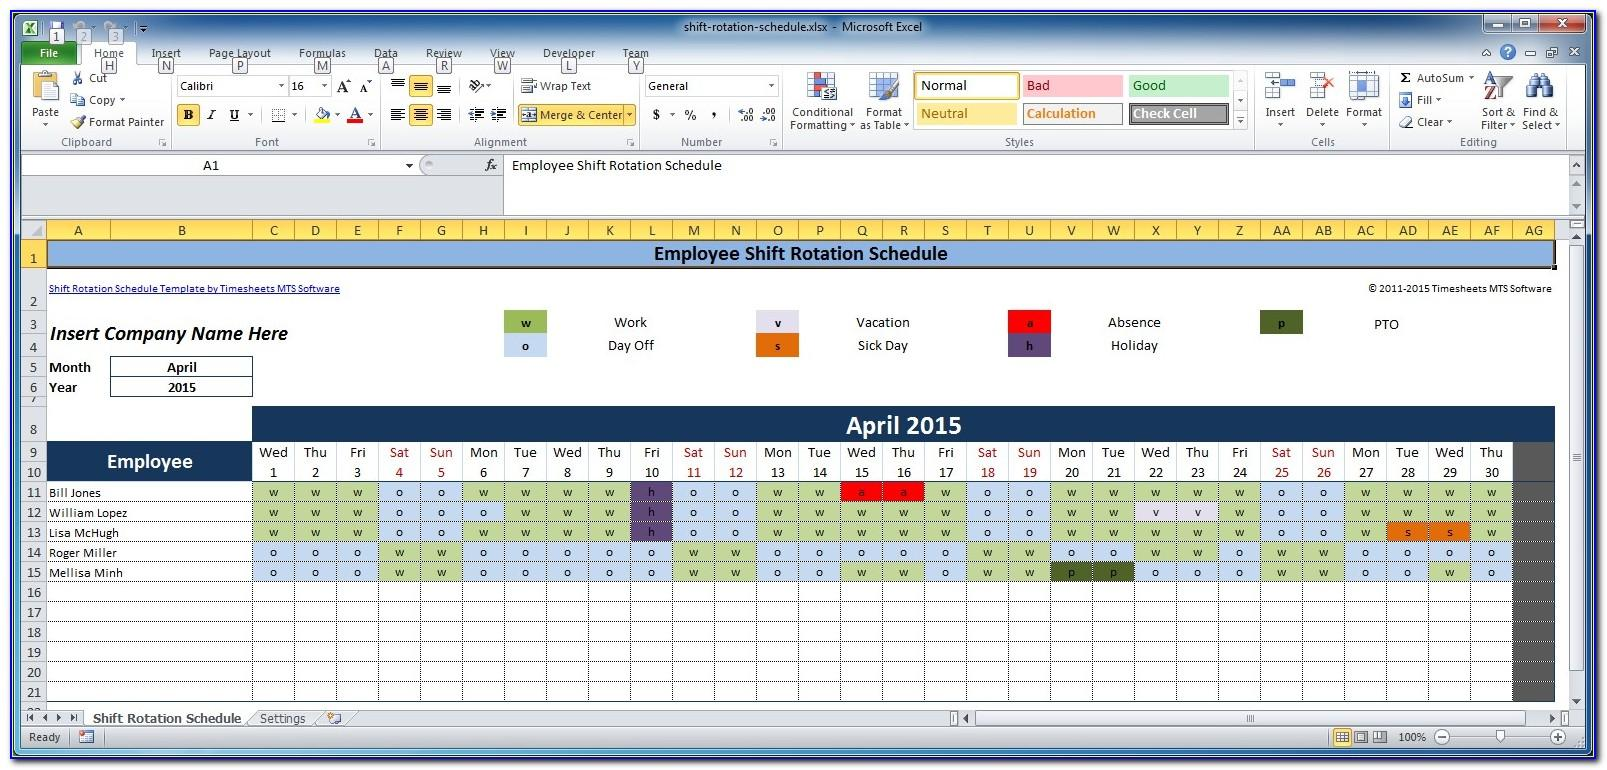 Weekly Employee Shift Schedule Template Microsoft